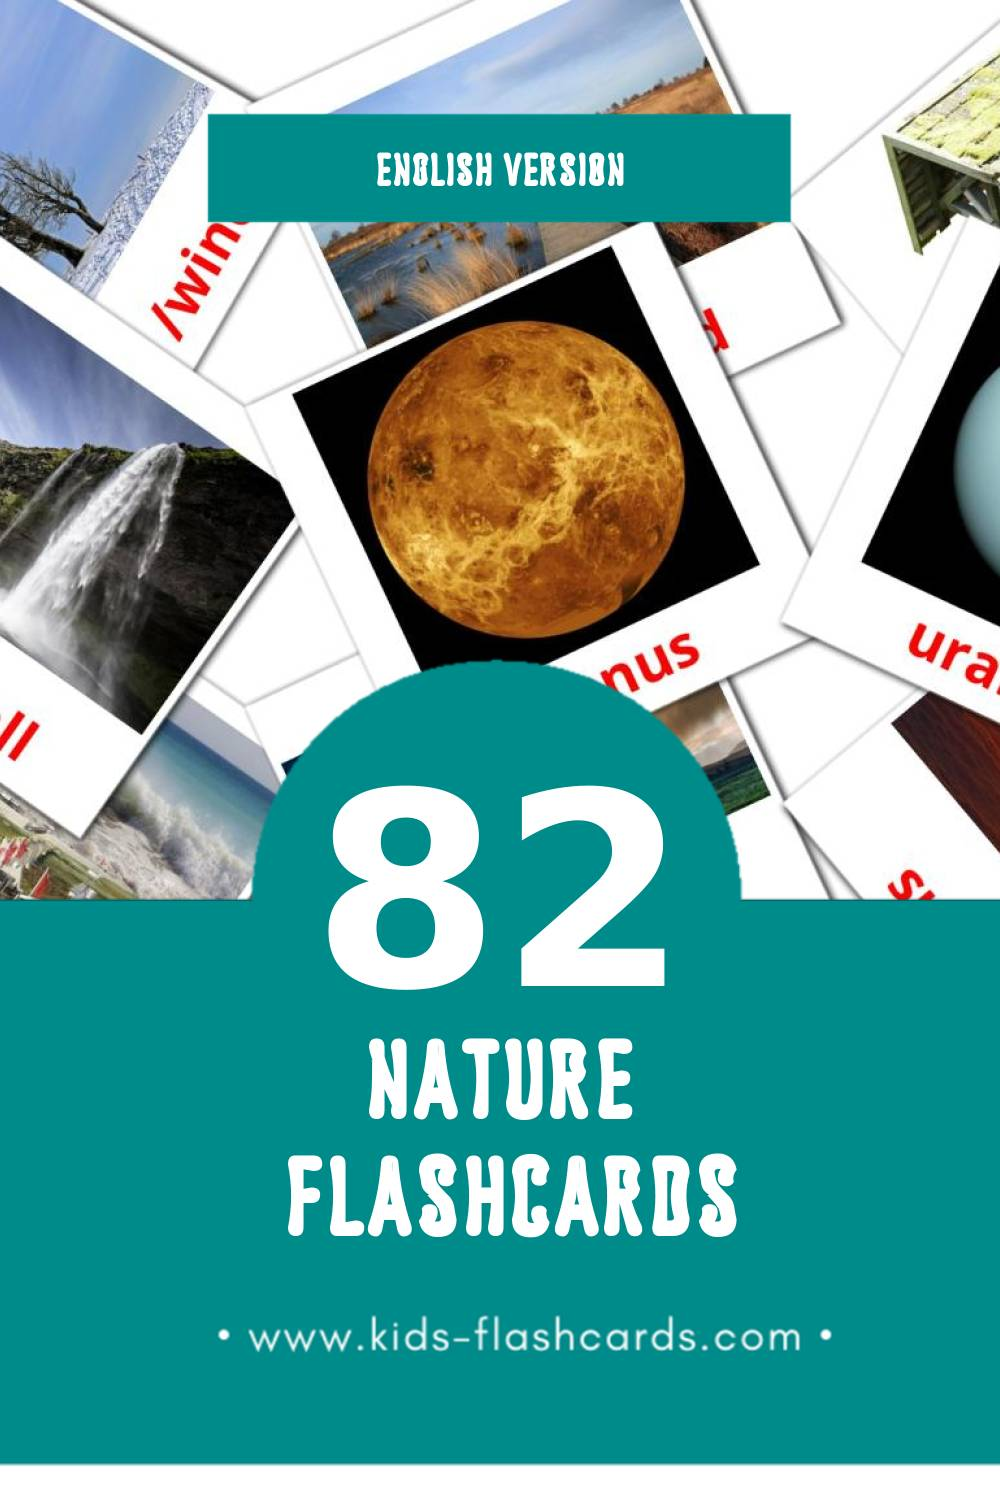 Visual Nature Flashcards for Toddlers (51 cards in English)